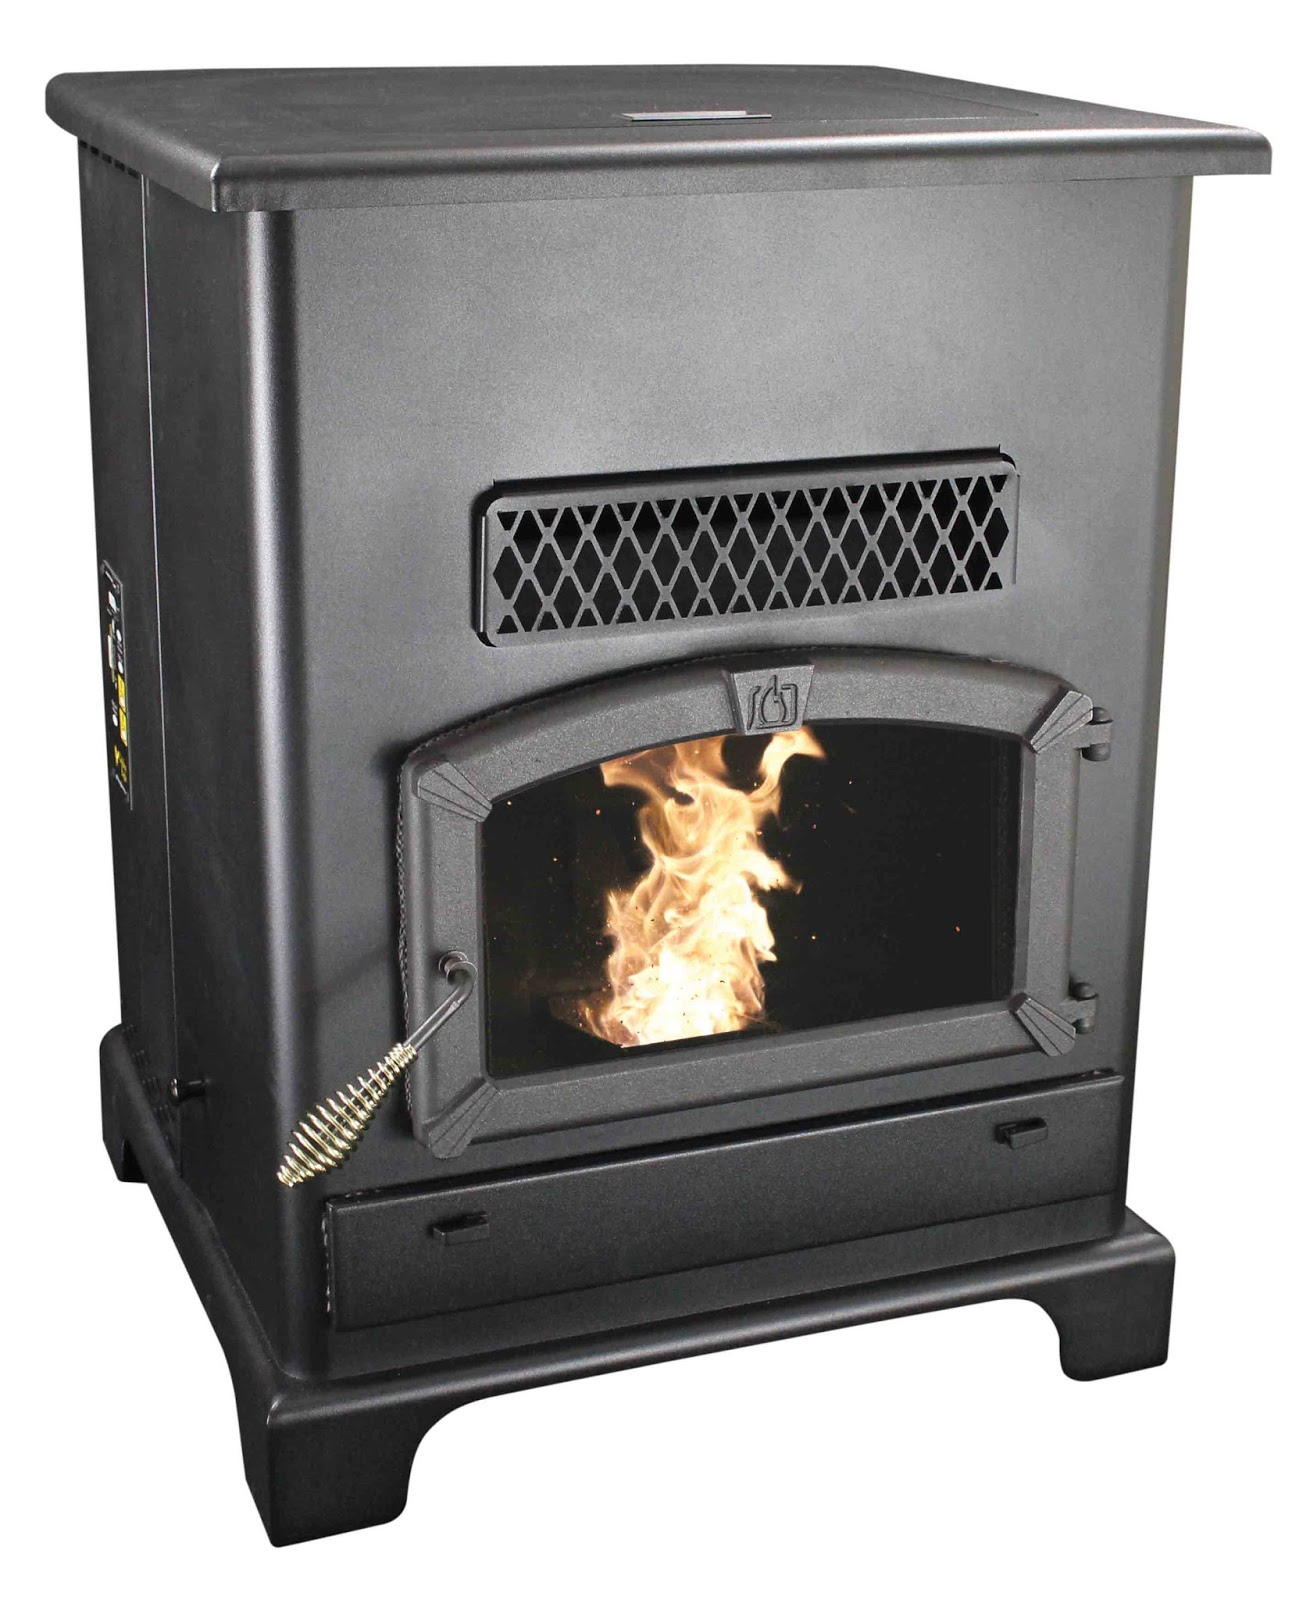 heat king wood stove model 36 manual